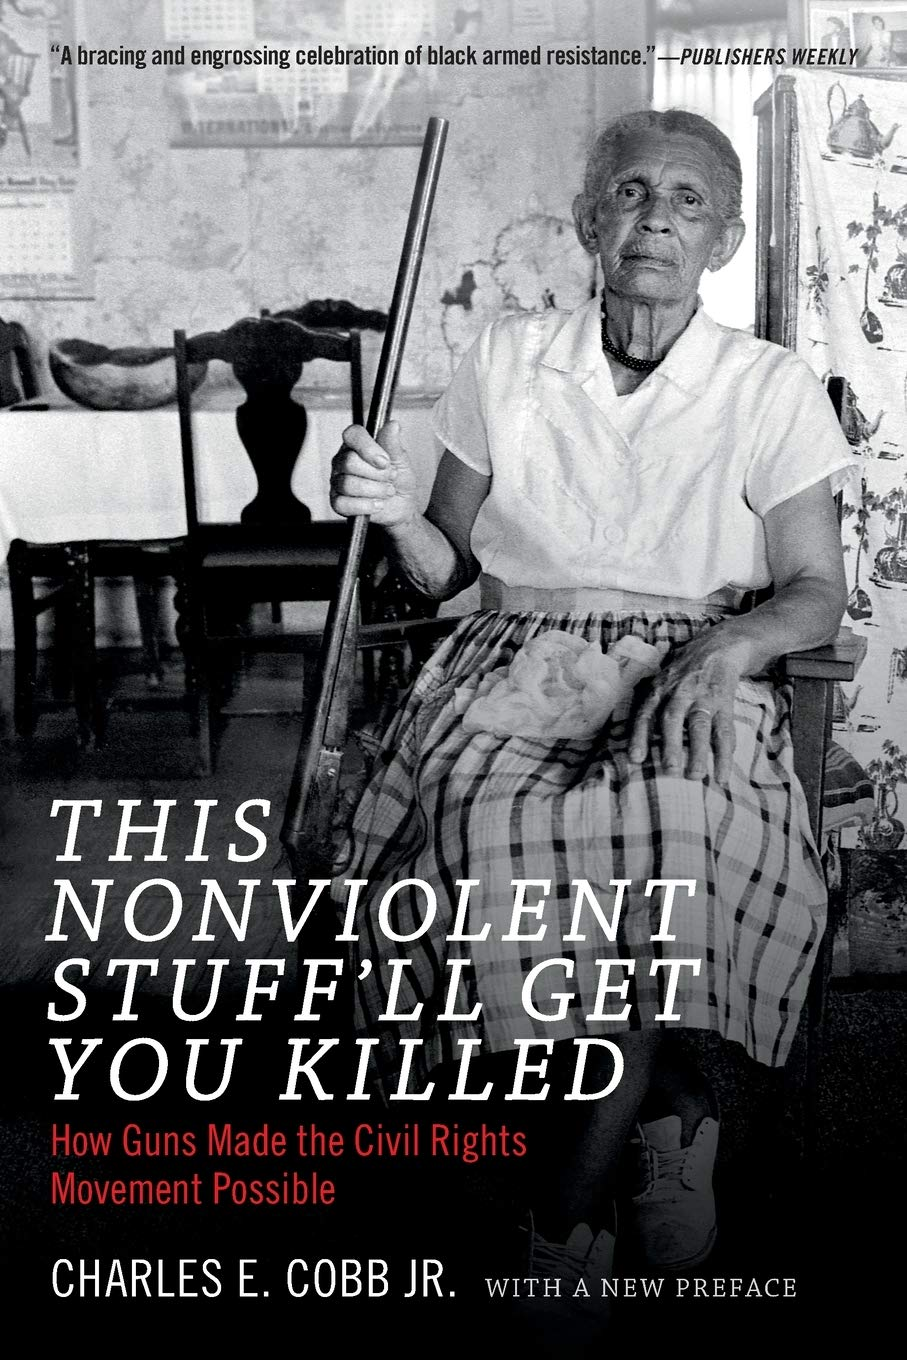 This Nonviolent Stuff'll Get You Killed: How Guns Made the Civil Rights  Movement Possible: Cobb Jr., Charles E.: 9780822361237: Amazon.com: Books